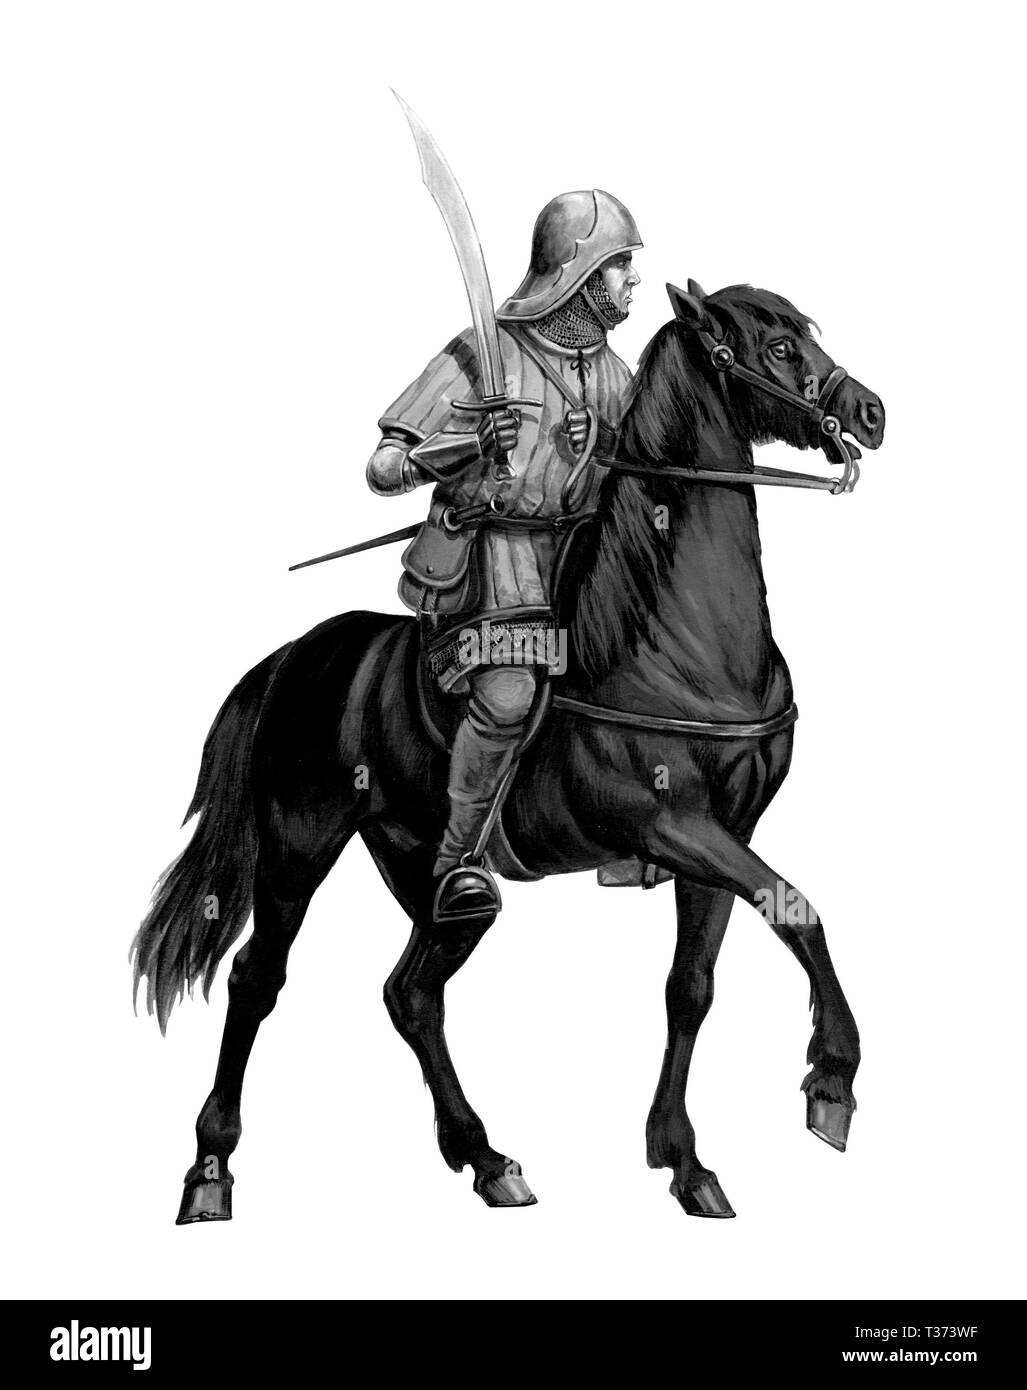 Mounted germanic knight, Teutonic knight illustration. Crusader on horseback. - Stock Image